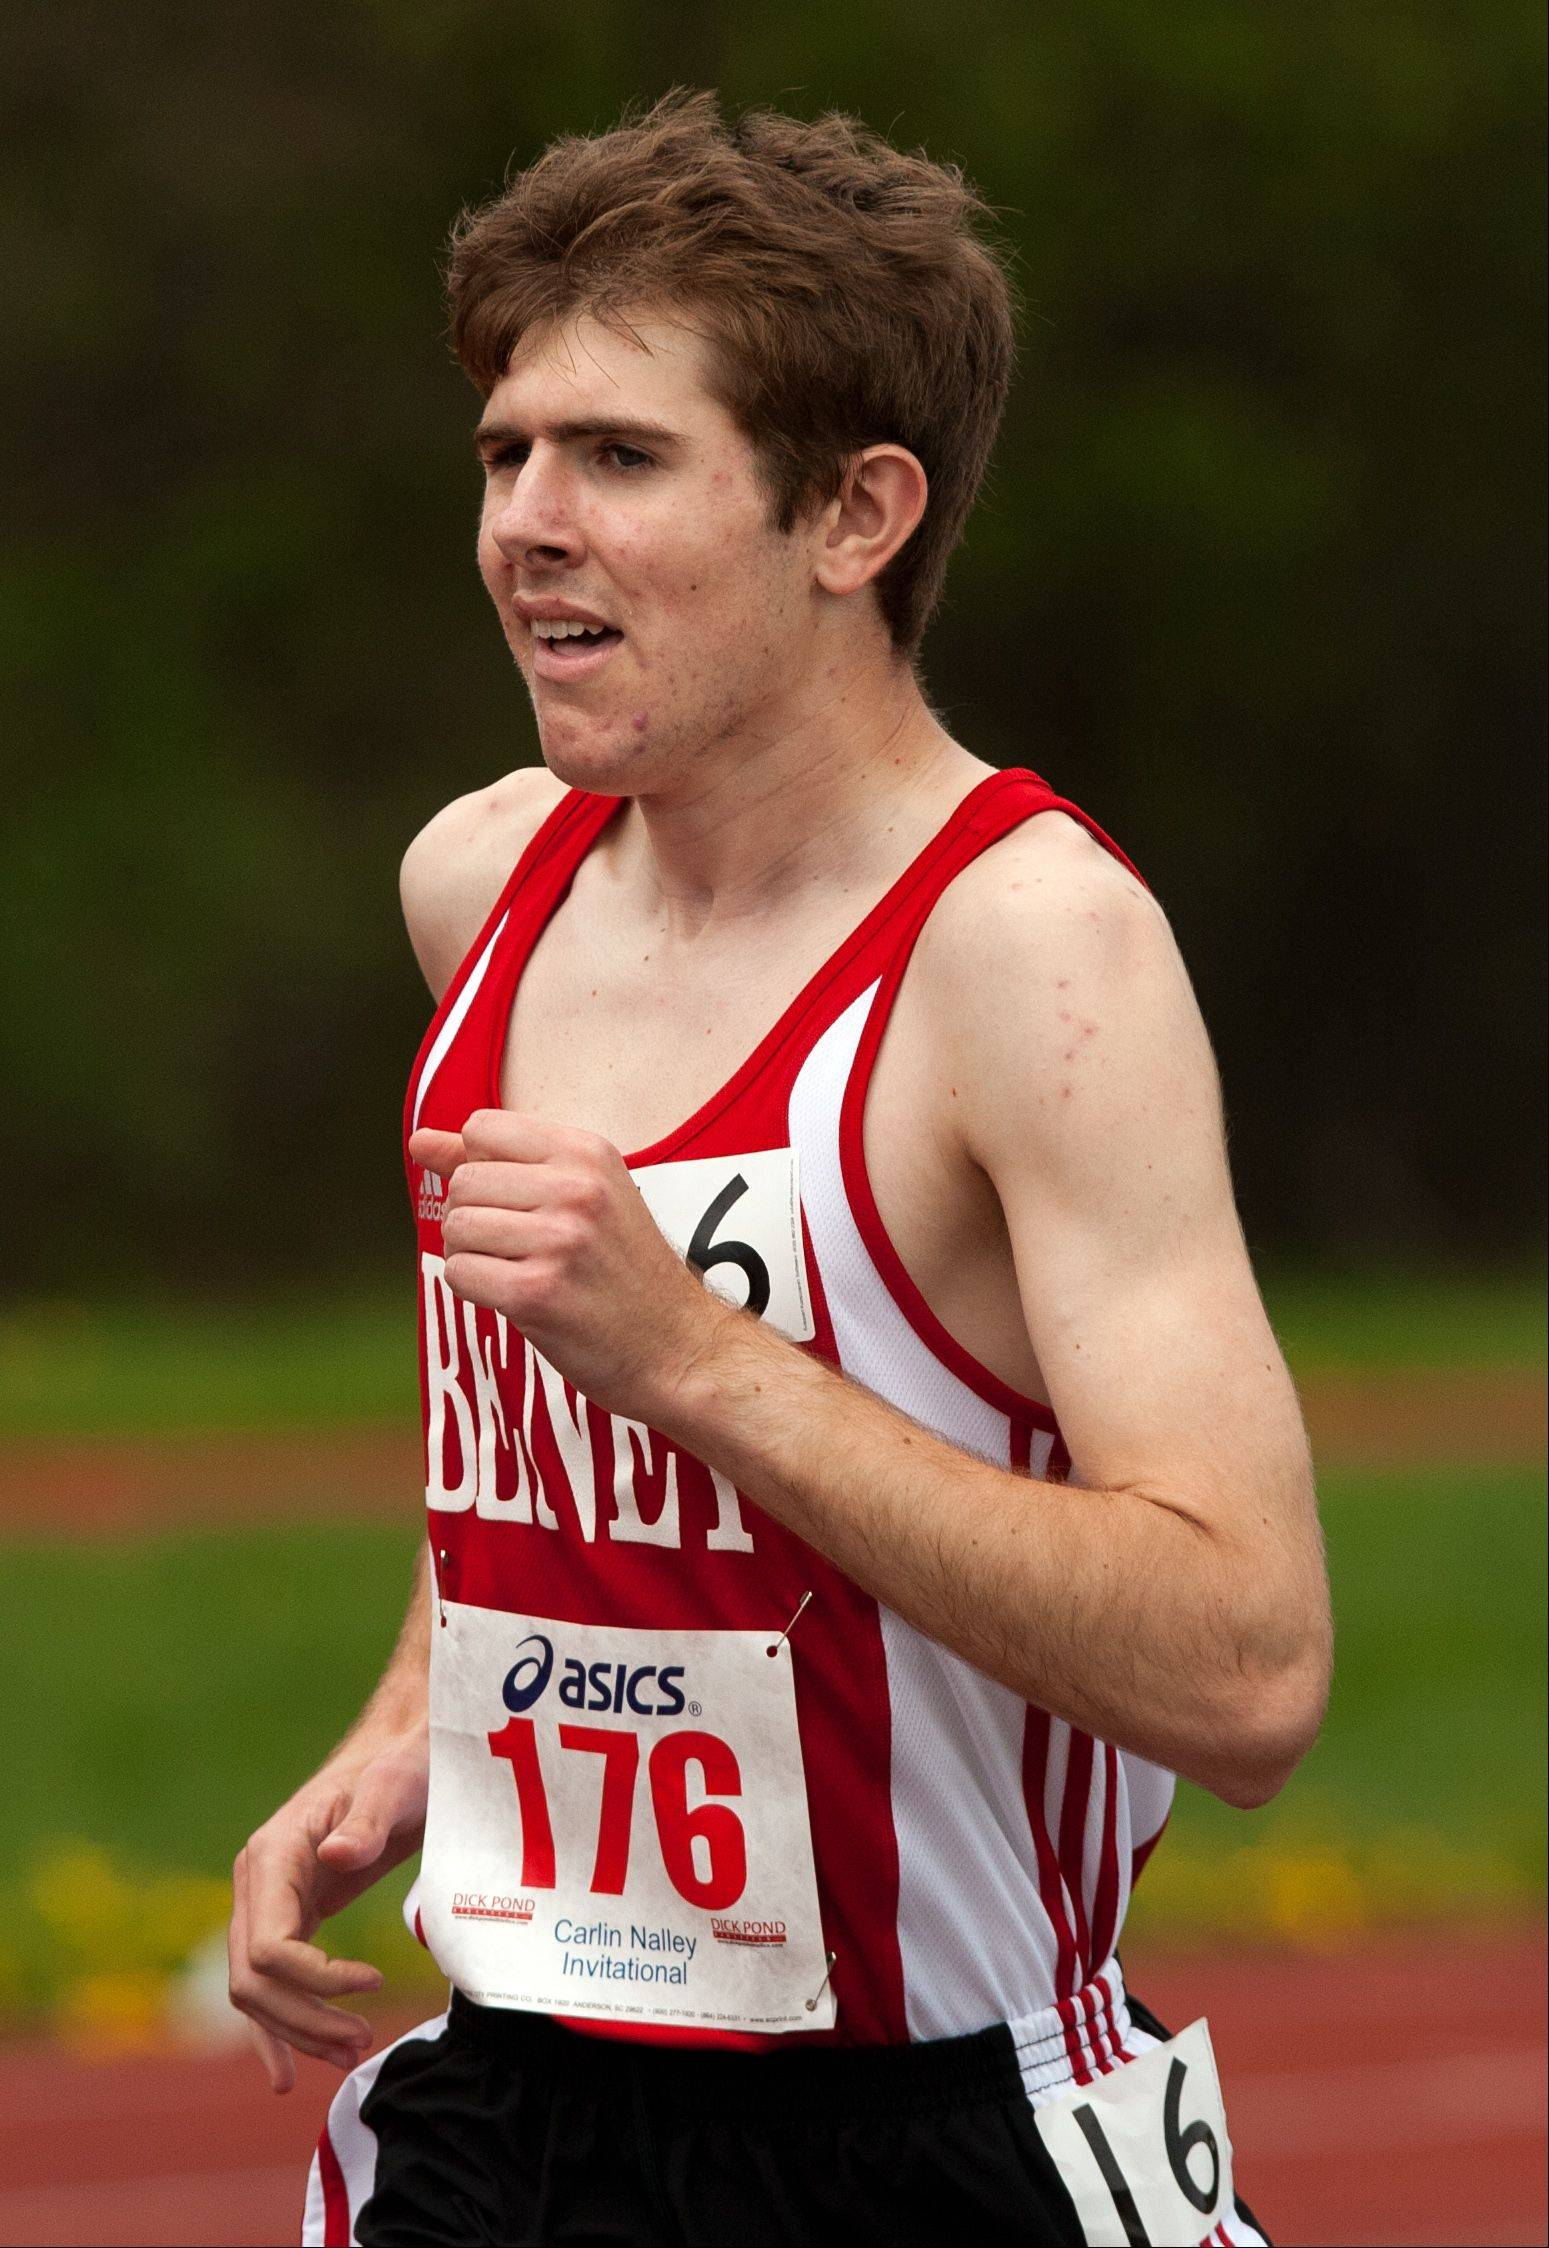 Benet's John Stoppelman runs the 3200 meter run during the 46th annual Carlin Nalley Boys´ Track Invitational at Benedictine University in Lisle.